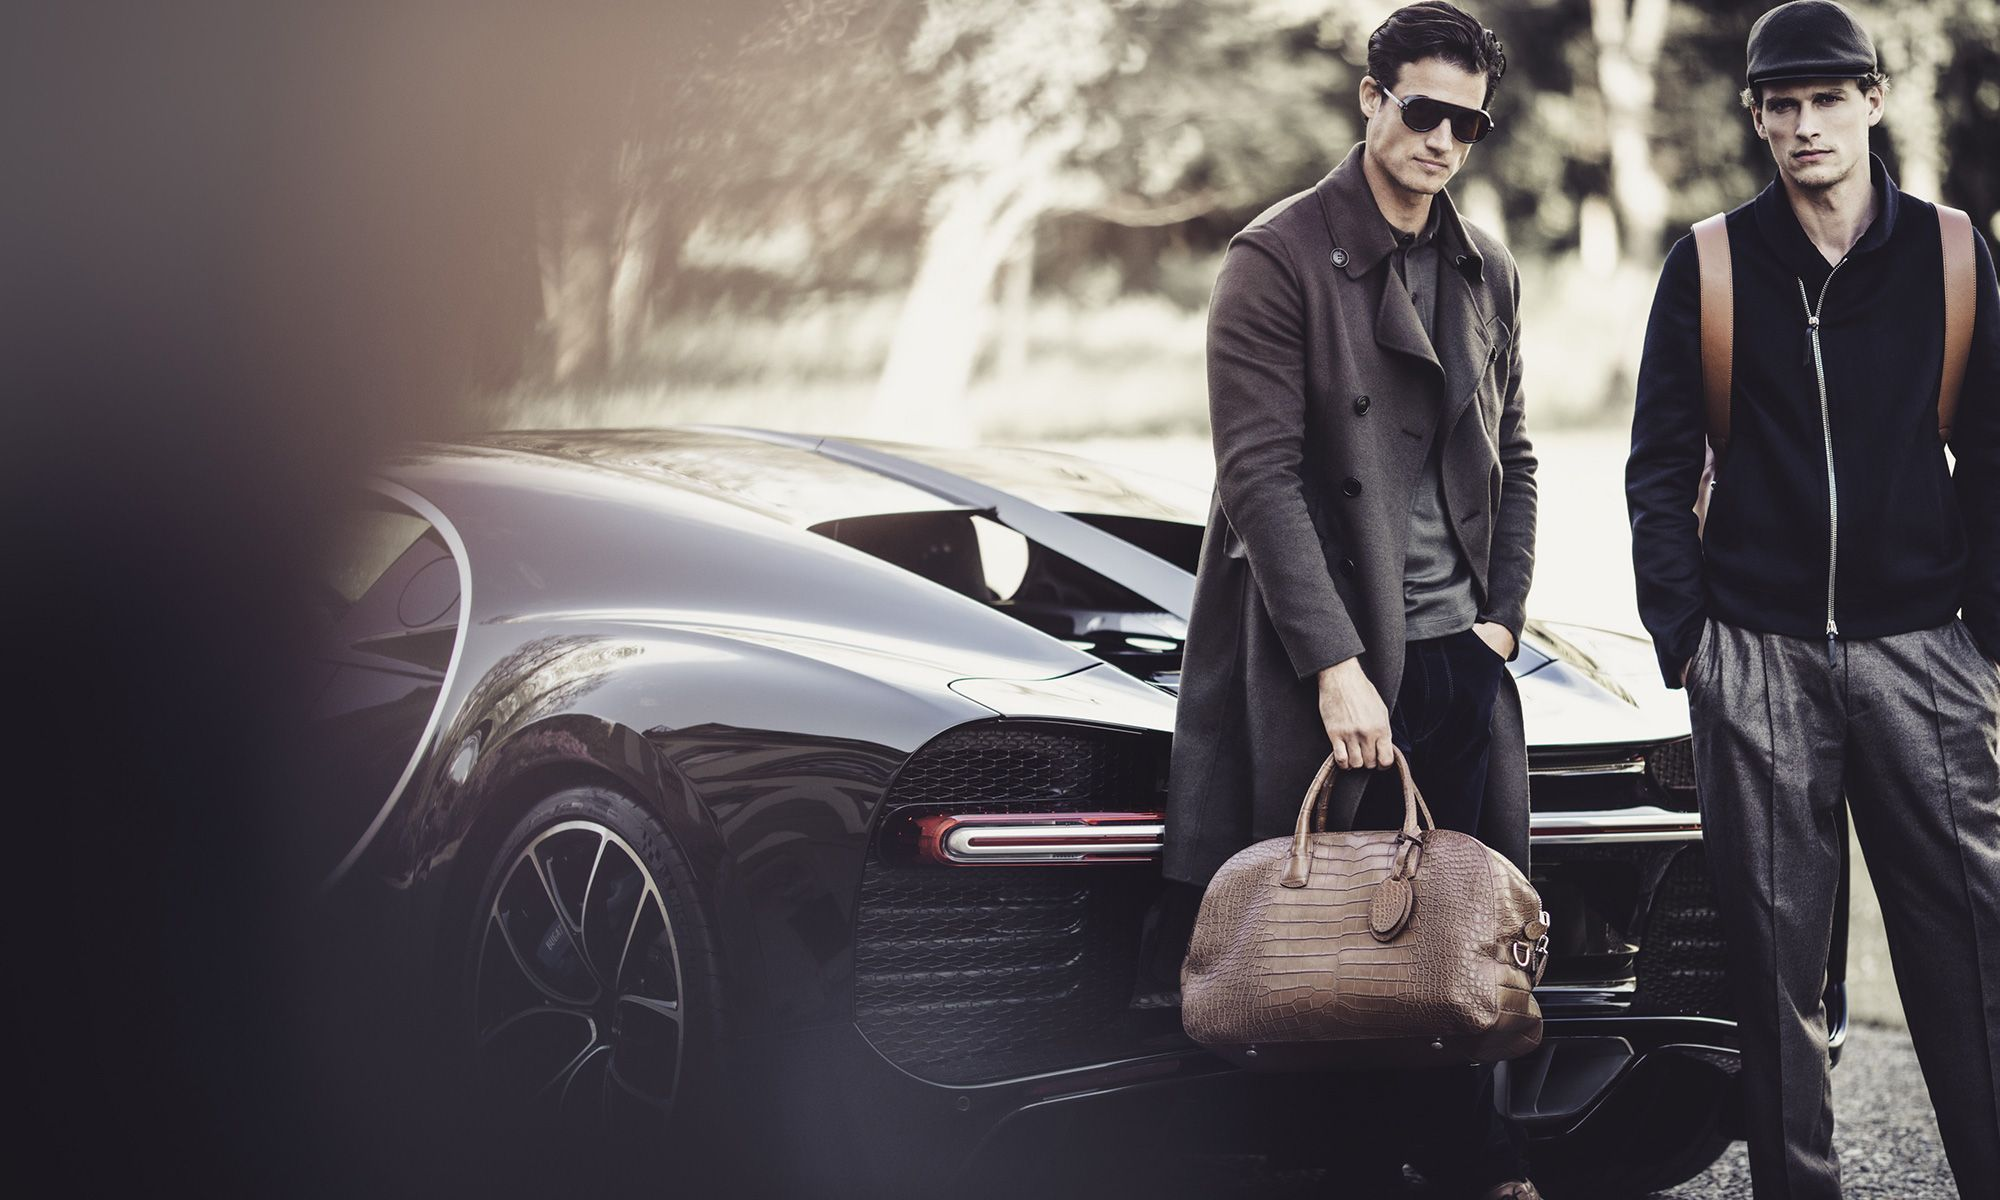 Giorgio Armani Creates Clothing and Accessories Line for Bugatti